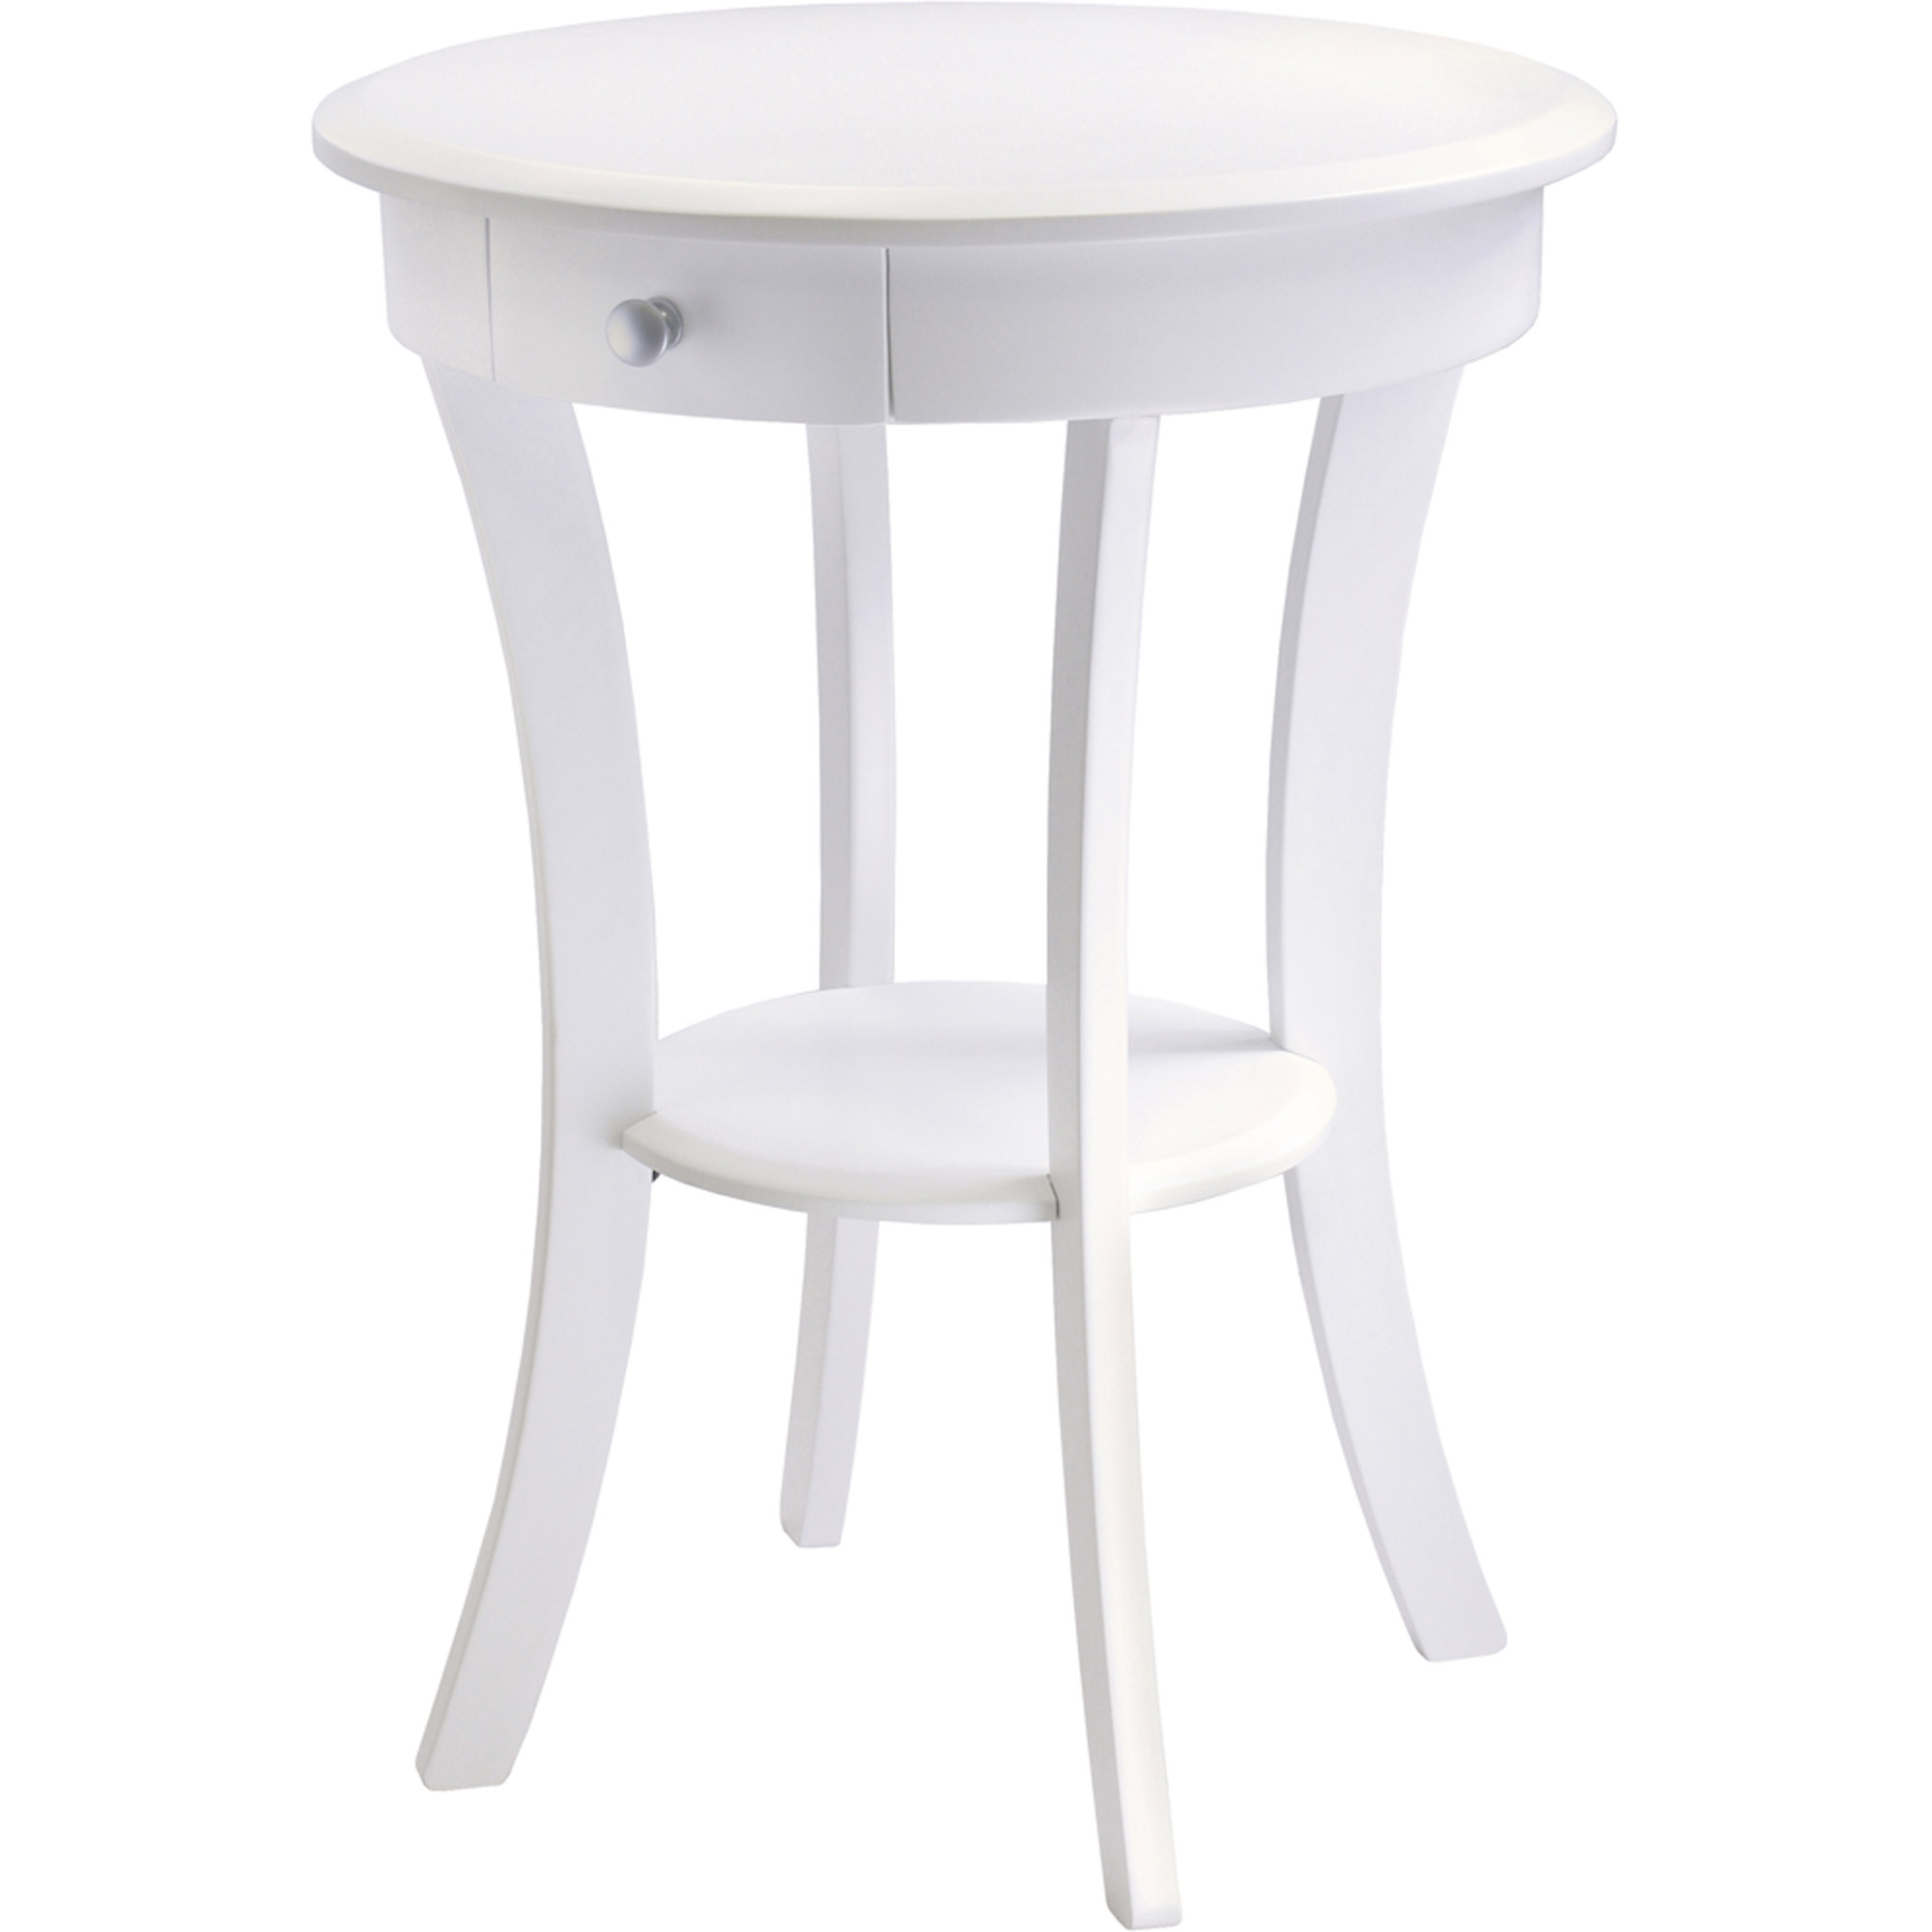 table antique rental tables tablecloths glass and dining granite small pedestal corner toppers argos whitewash kitchen white distressed round chairs rent melamine accent inch